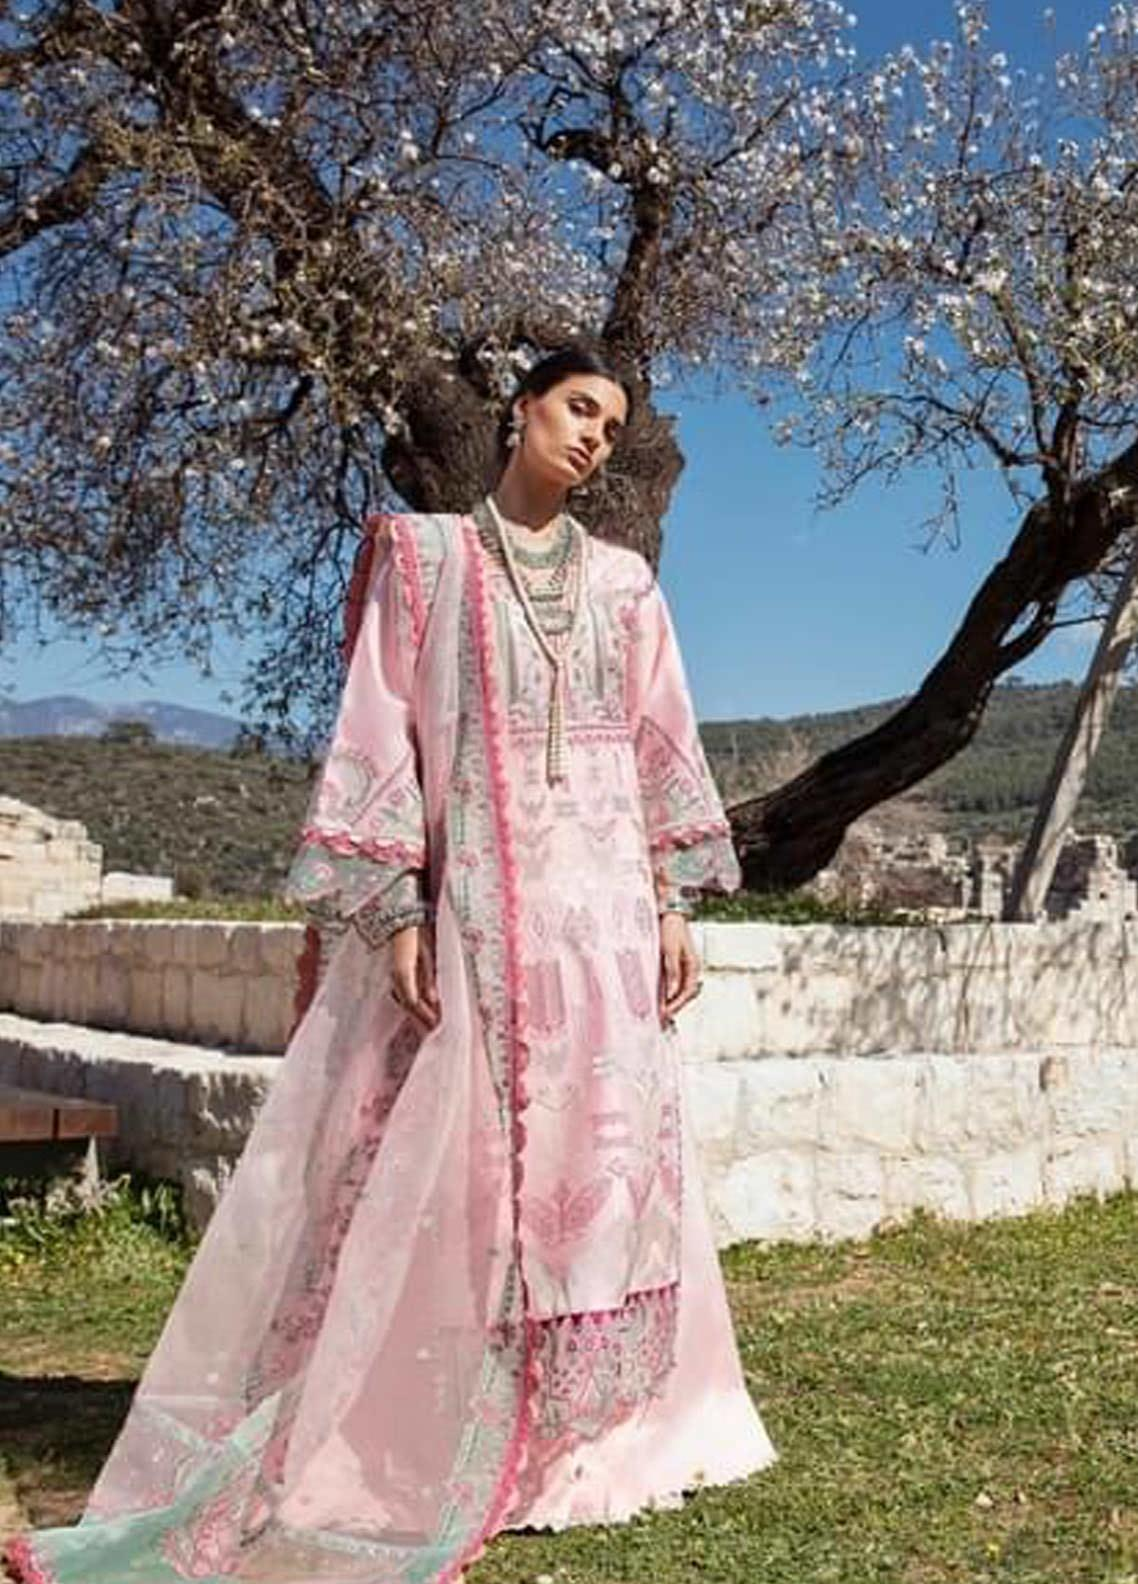 Selene By Republic WomensWear Embroidered Lawn Suits Unstitched 3 Piece RW21S Mahra B - Luxury Collection